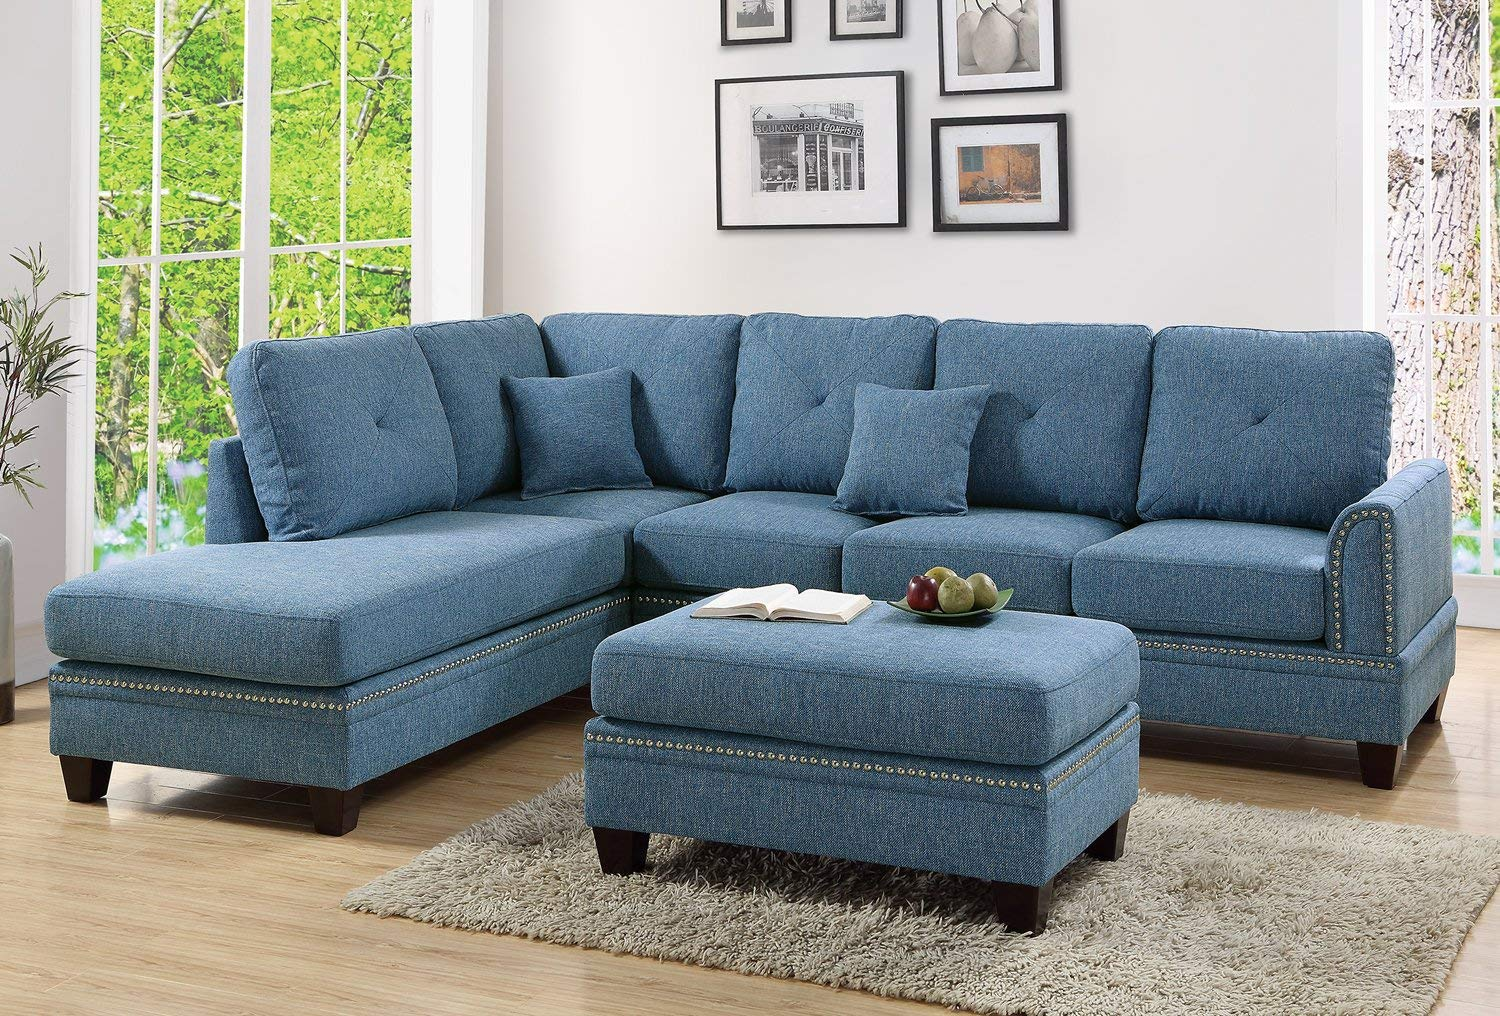 Blue 2PC Sectional Sofa With Nail Head Trim Accents